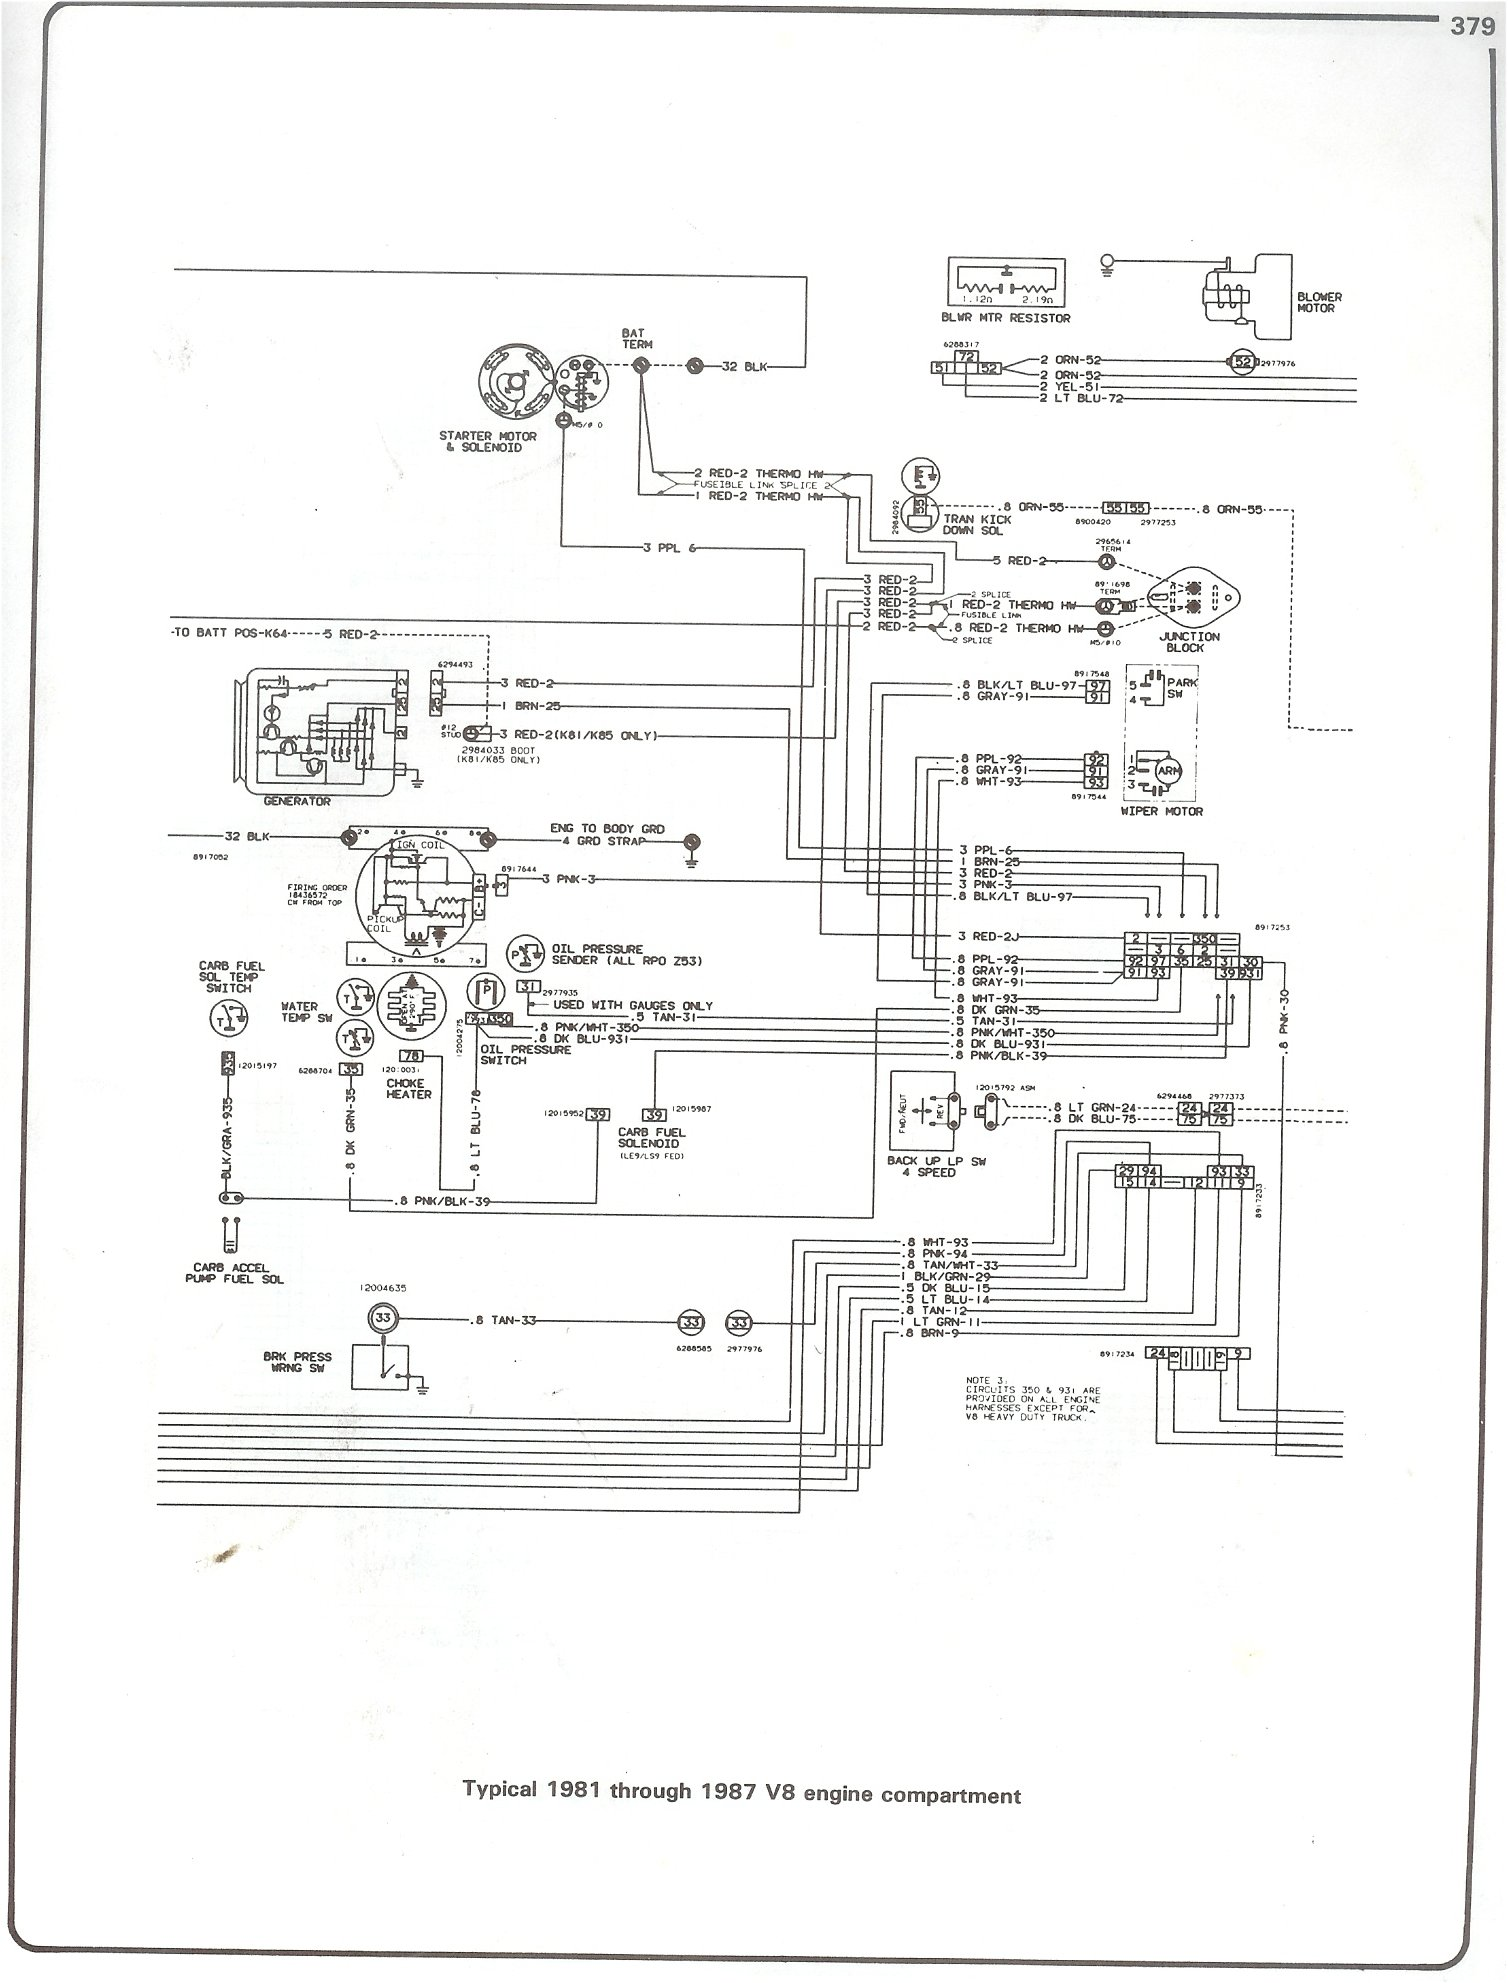 78 Chevy Caprice Wiring Diagram Ford F150 Radio Harness 86 Truck Diagram86